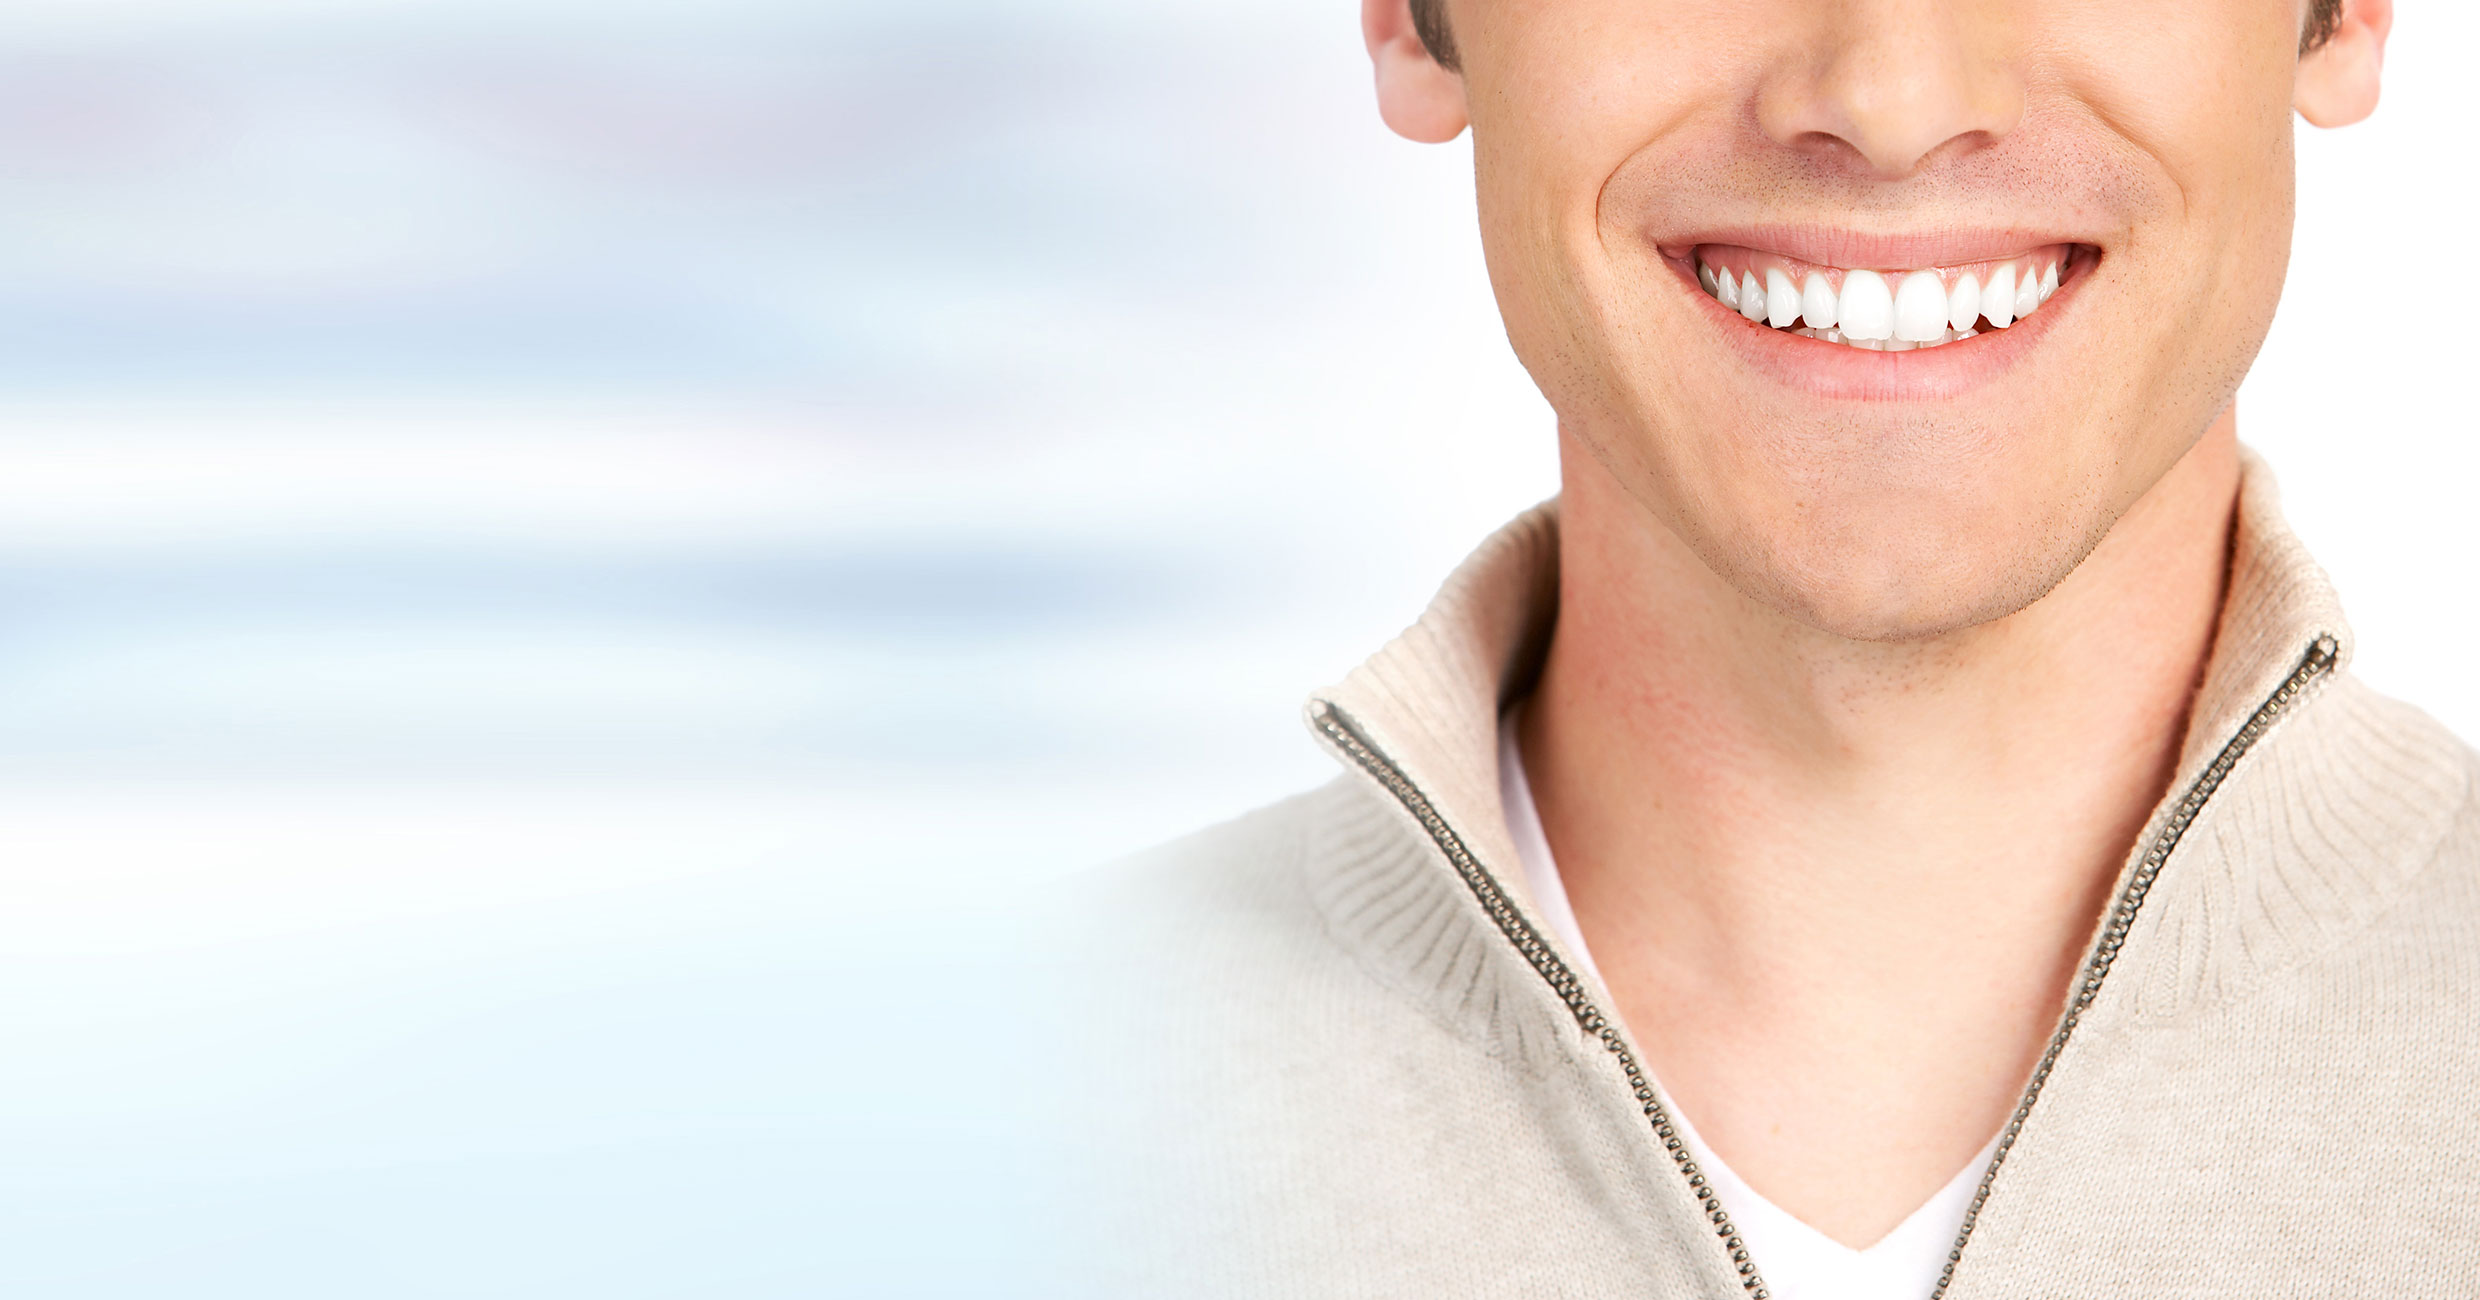 Magic-Dental-Waterdown-Teeth-Whitening